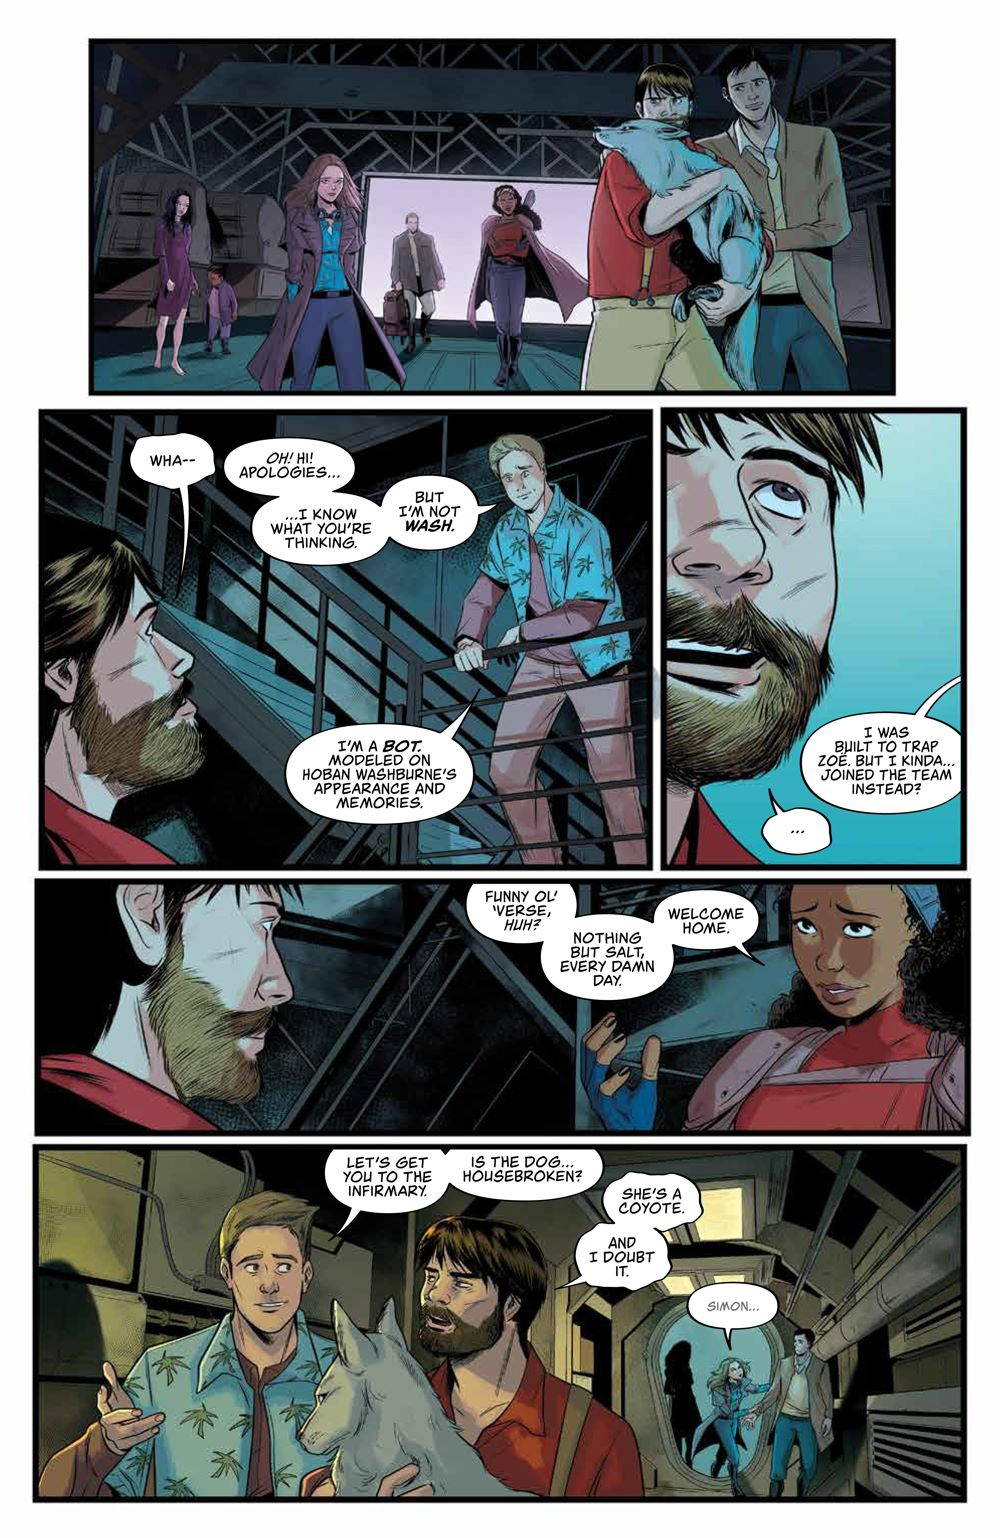 Firefly_028_PRESS_7 ComicList Previews: FIREFLY #28